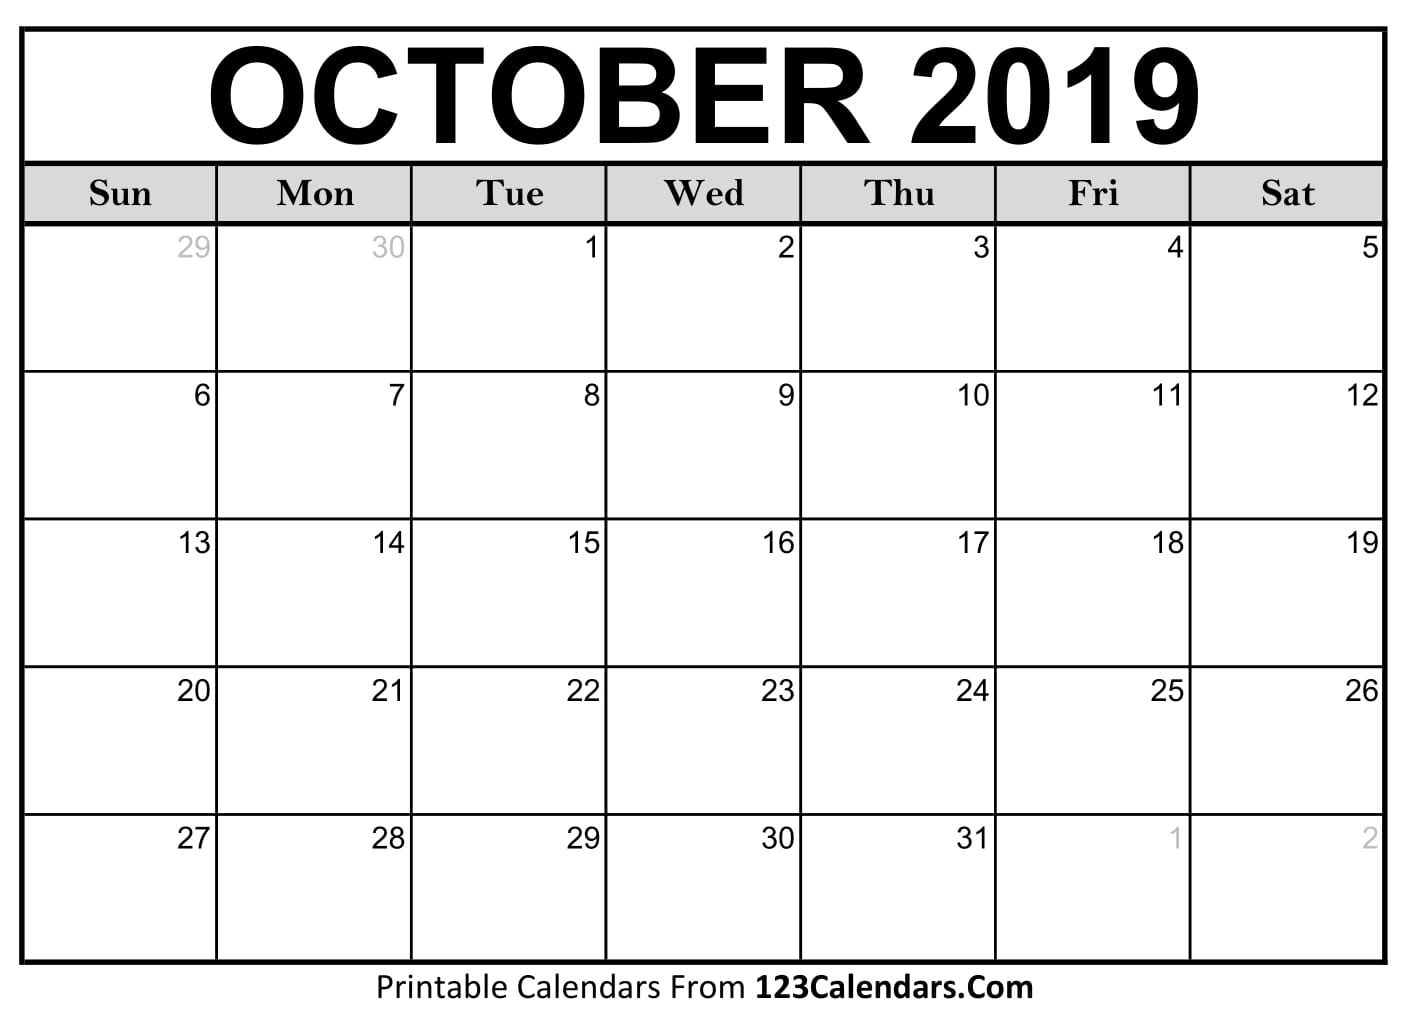 Calendars Templates | Printable October 2018 Calendar Templates 123calendars Com